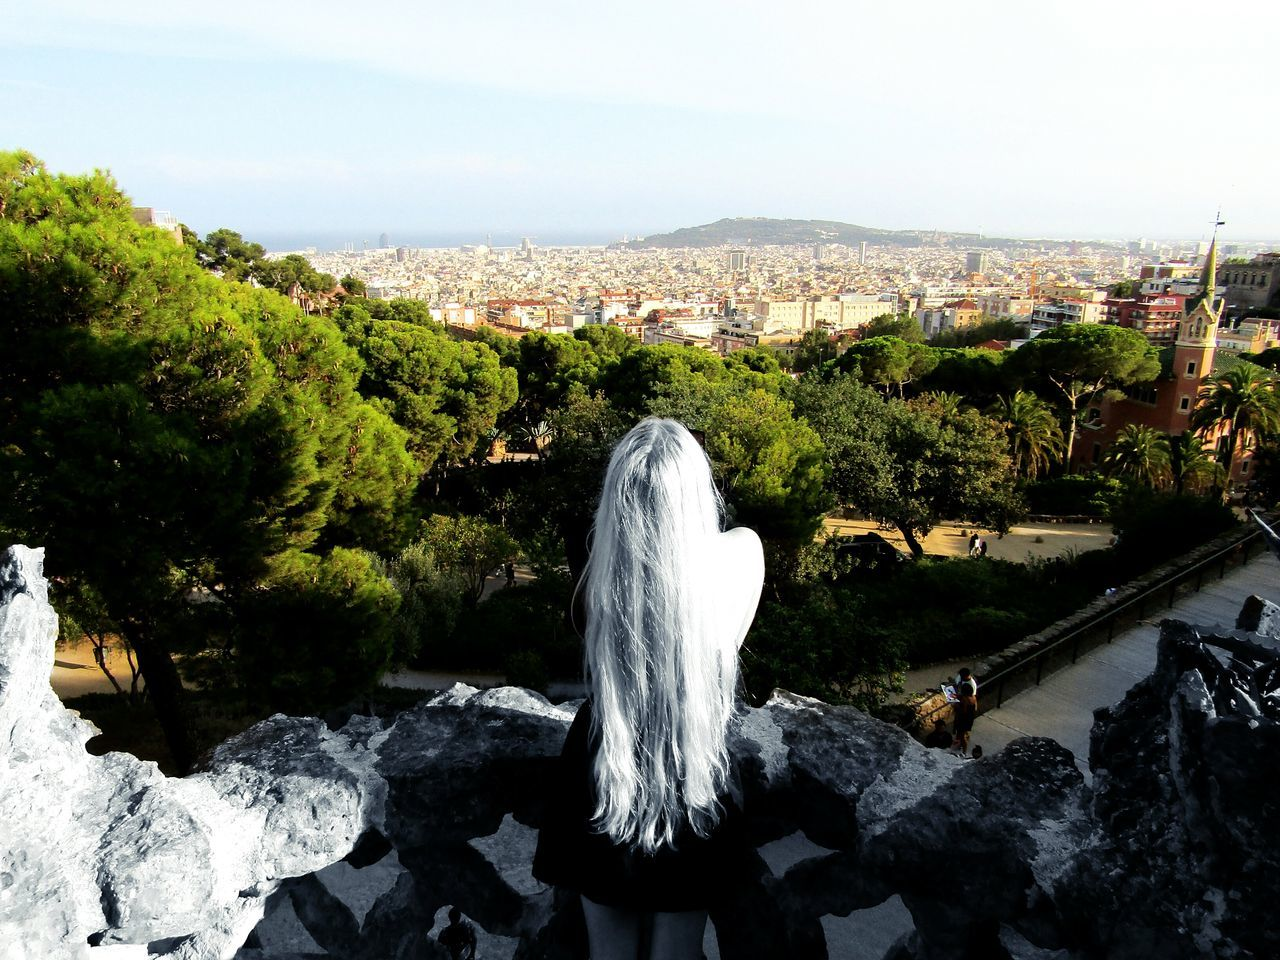 Blackandwhite Blackandwhitephotography Black&white Rapunzel's Tower Rapunzel Let Down Your Hair Myworld Coloring Longhairdontcare That's Me Relaxing Taking Photos Landscapephotography Fine Art Photography From My Point Of View Eyeemcollection Eye4photography  Above The City Takeapicture Stillife Newtalent SPAIN Barcelona Parkguell